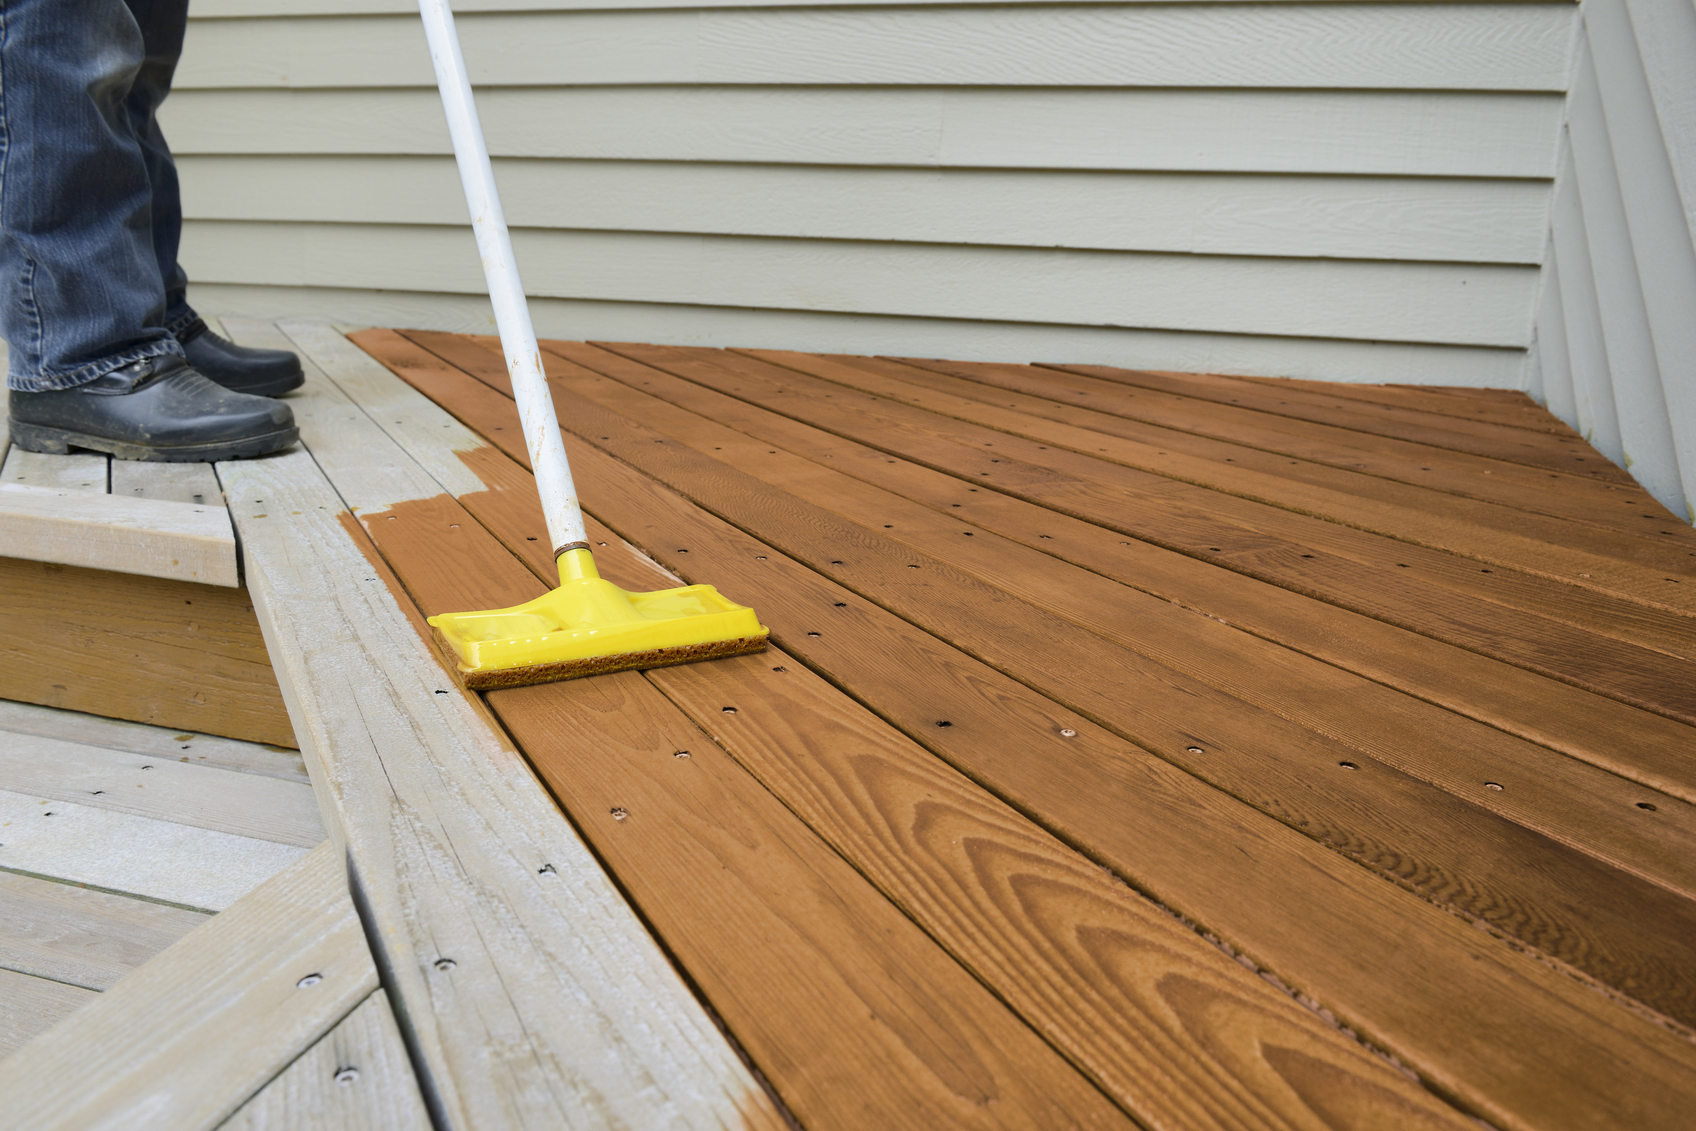 10 Best Rated Deck Stains Lovetoknow for measurements 1696 X 1131